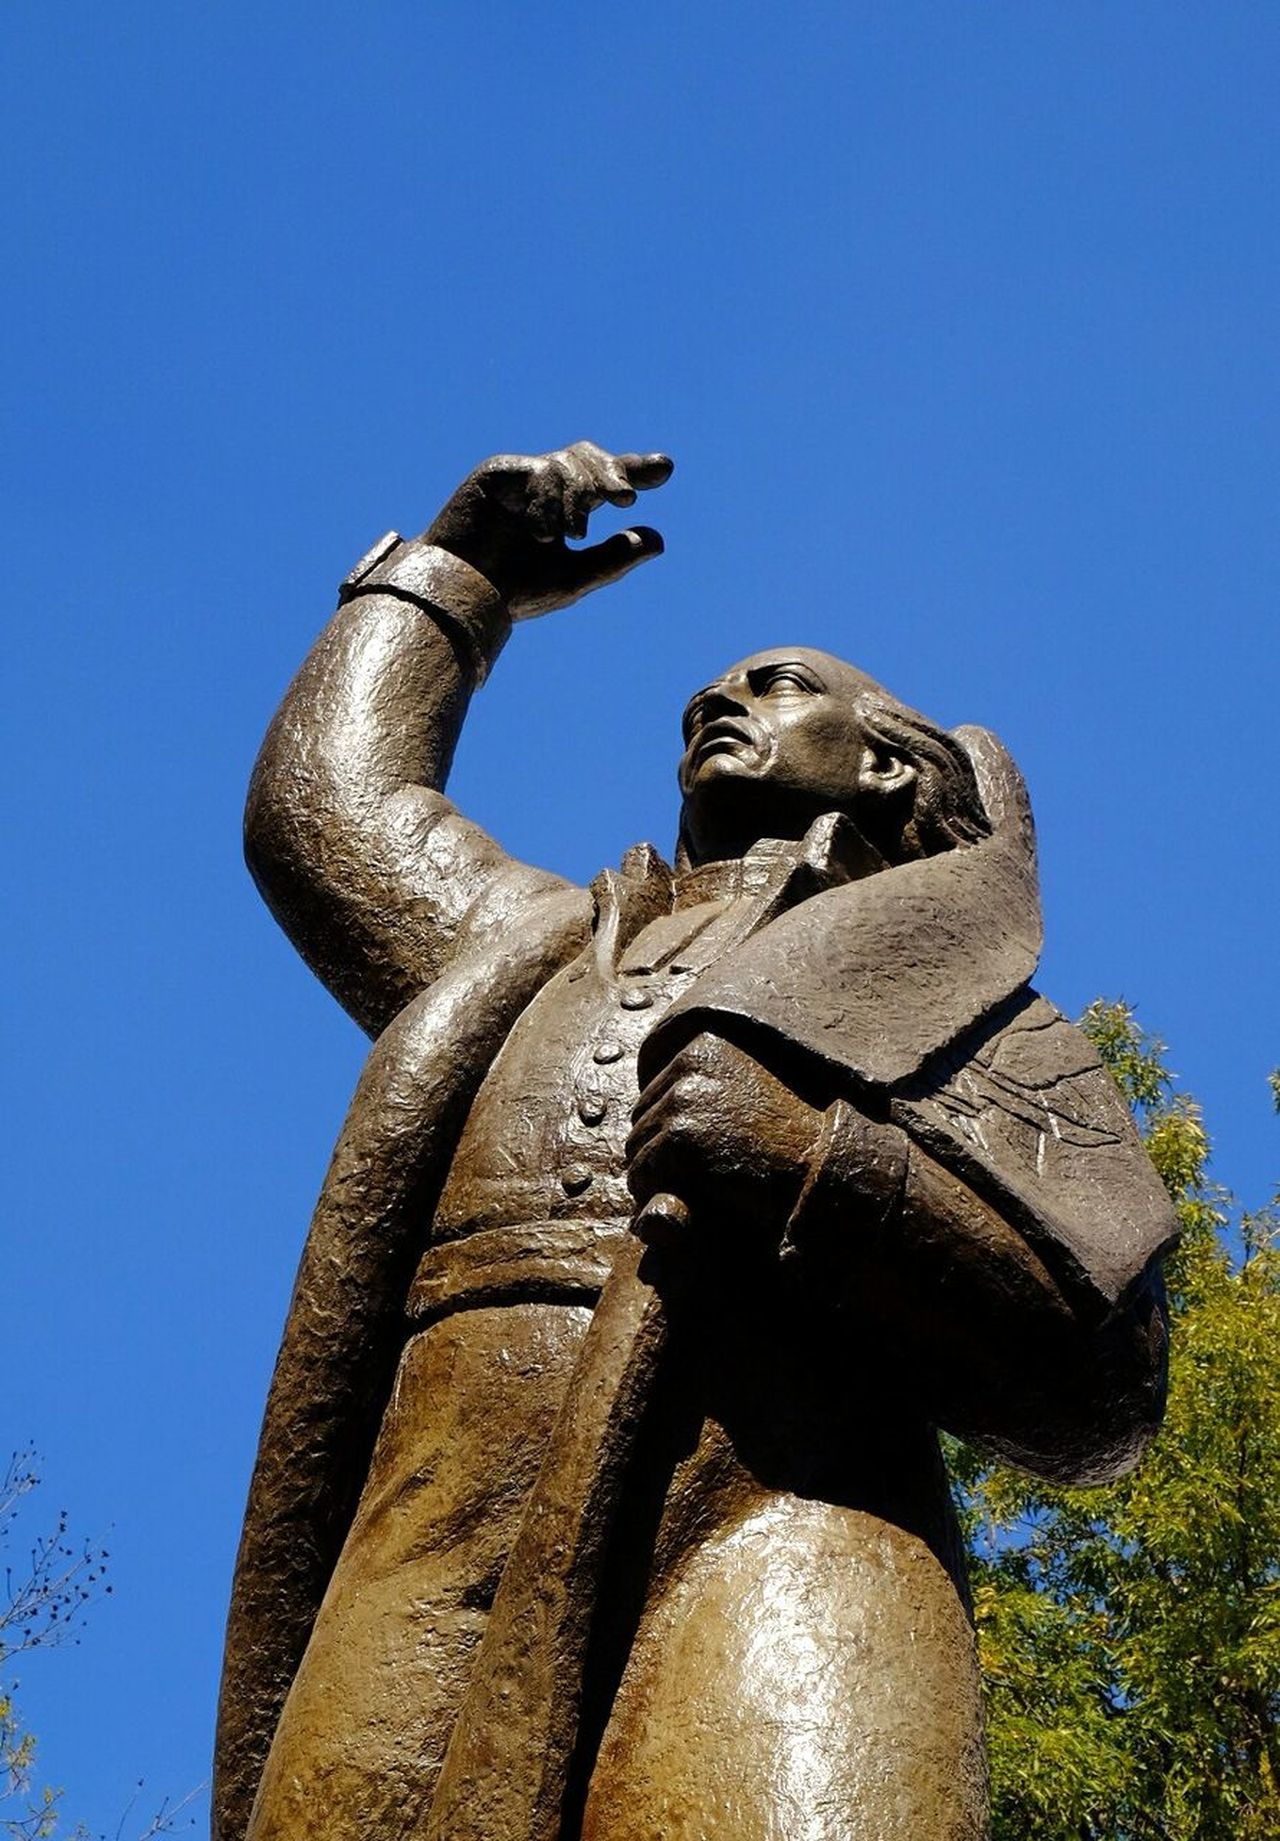 Coyoacan Park, Mexico DF Clear Sky Sky Statue Sculpture One Person Mexico_maravilloso MICDMX Outdoors Day Fuji X-T1 FUJIFILM X-T1 Velvia Fujixseries Travel Destinations Travel Photography Holidays Arquitecture And Art Mexico Xseries